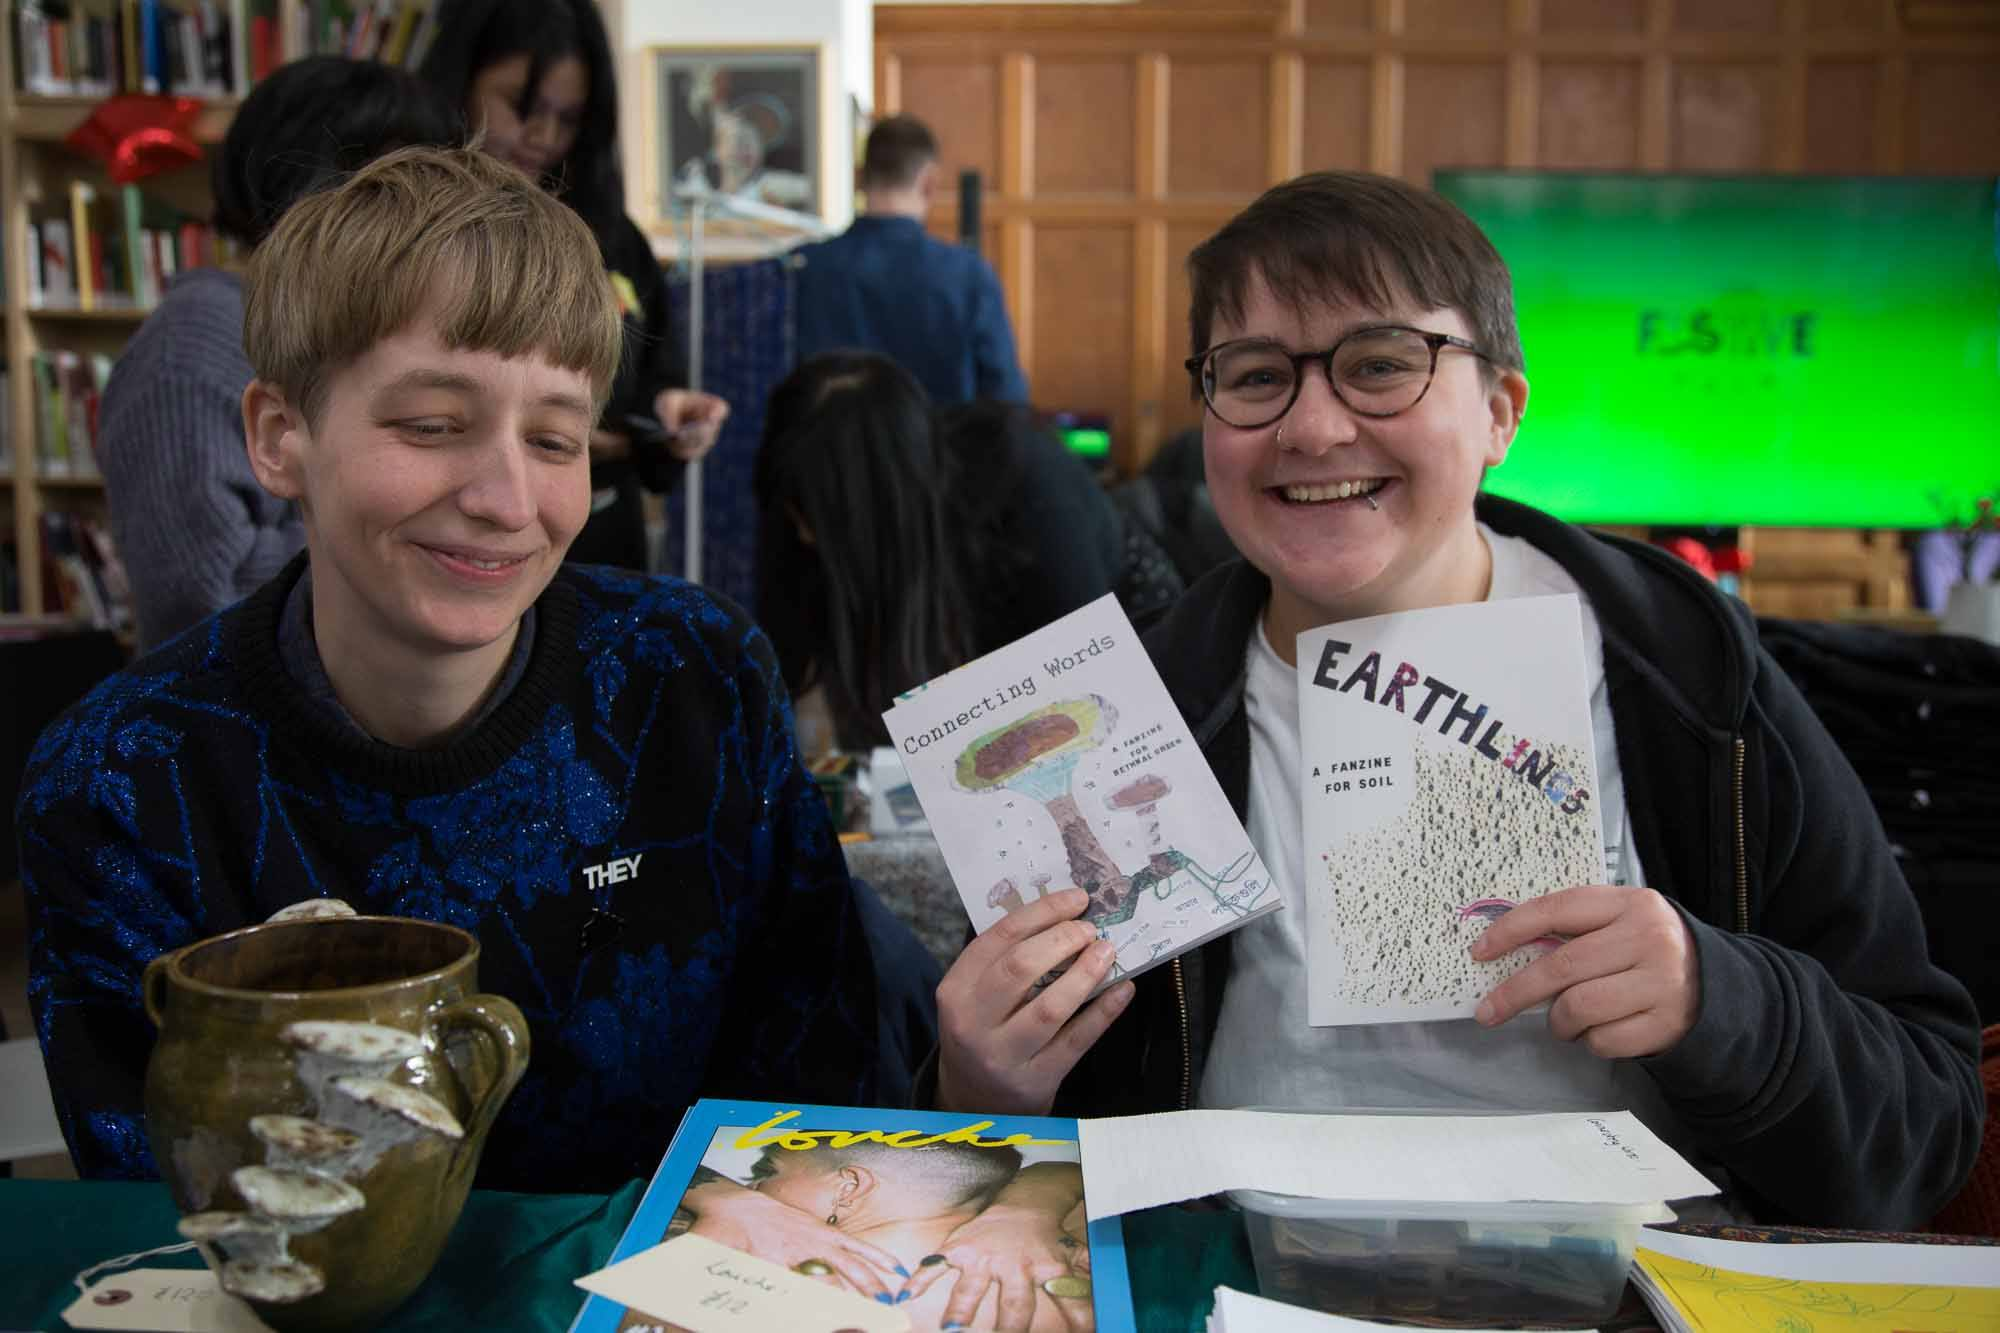 Two stall holders display their zines.